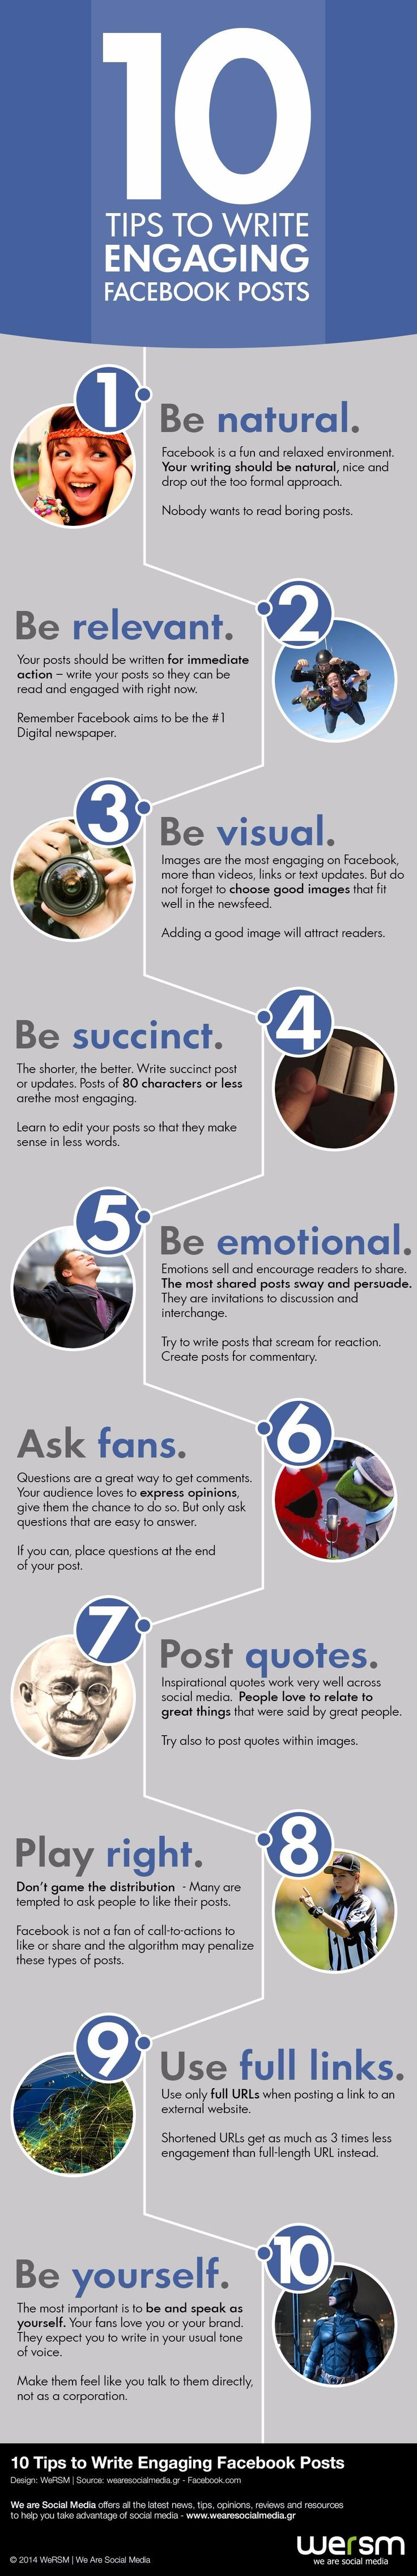 Tips to write engaging posts on Facebook #infographic #Facebookposts